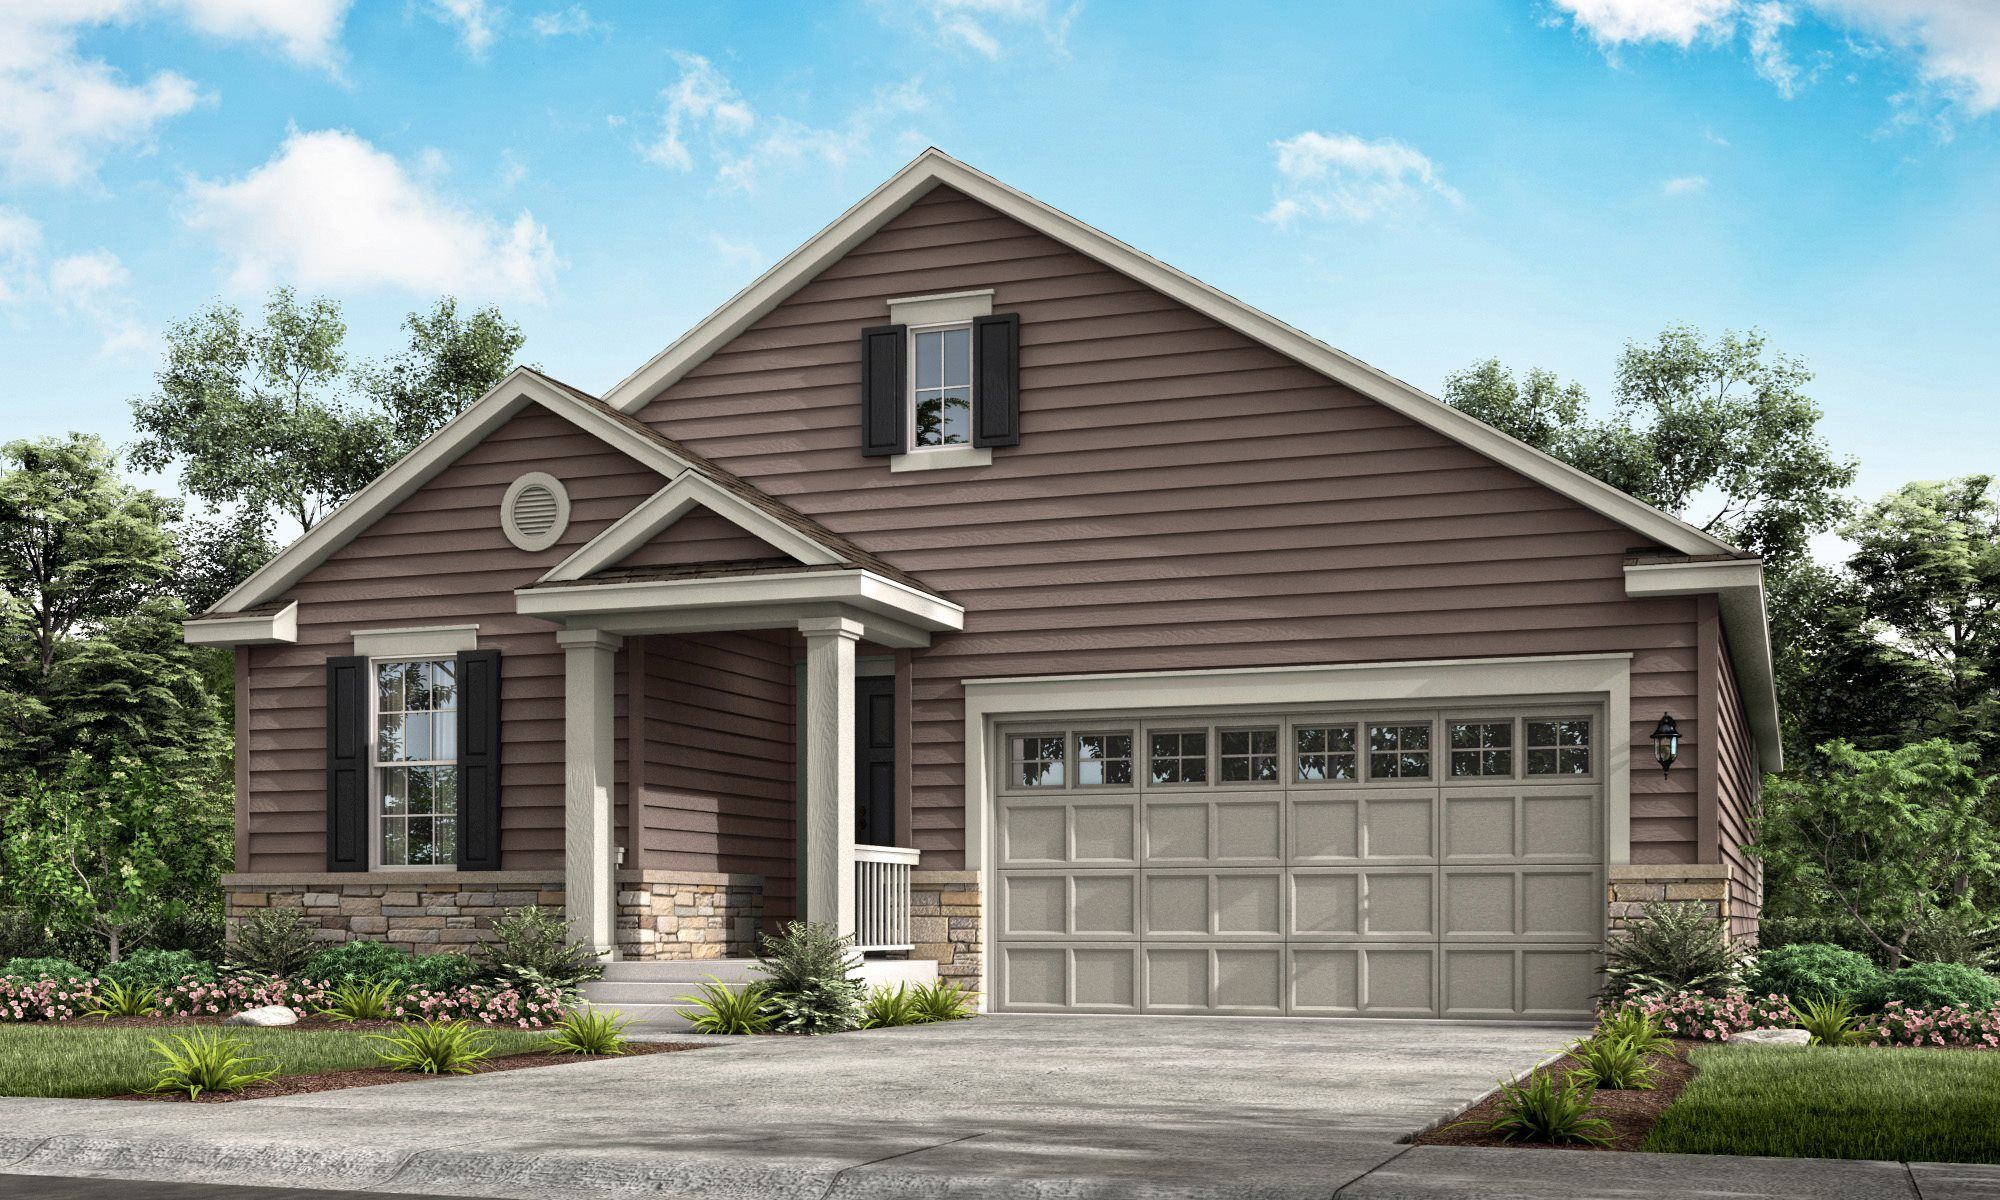 Single Family for Sale at Heritage Todd Creek: The Masters Collection - Devon 8052 E. 151st Place Thornton, Colorado 80602 United States